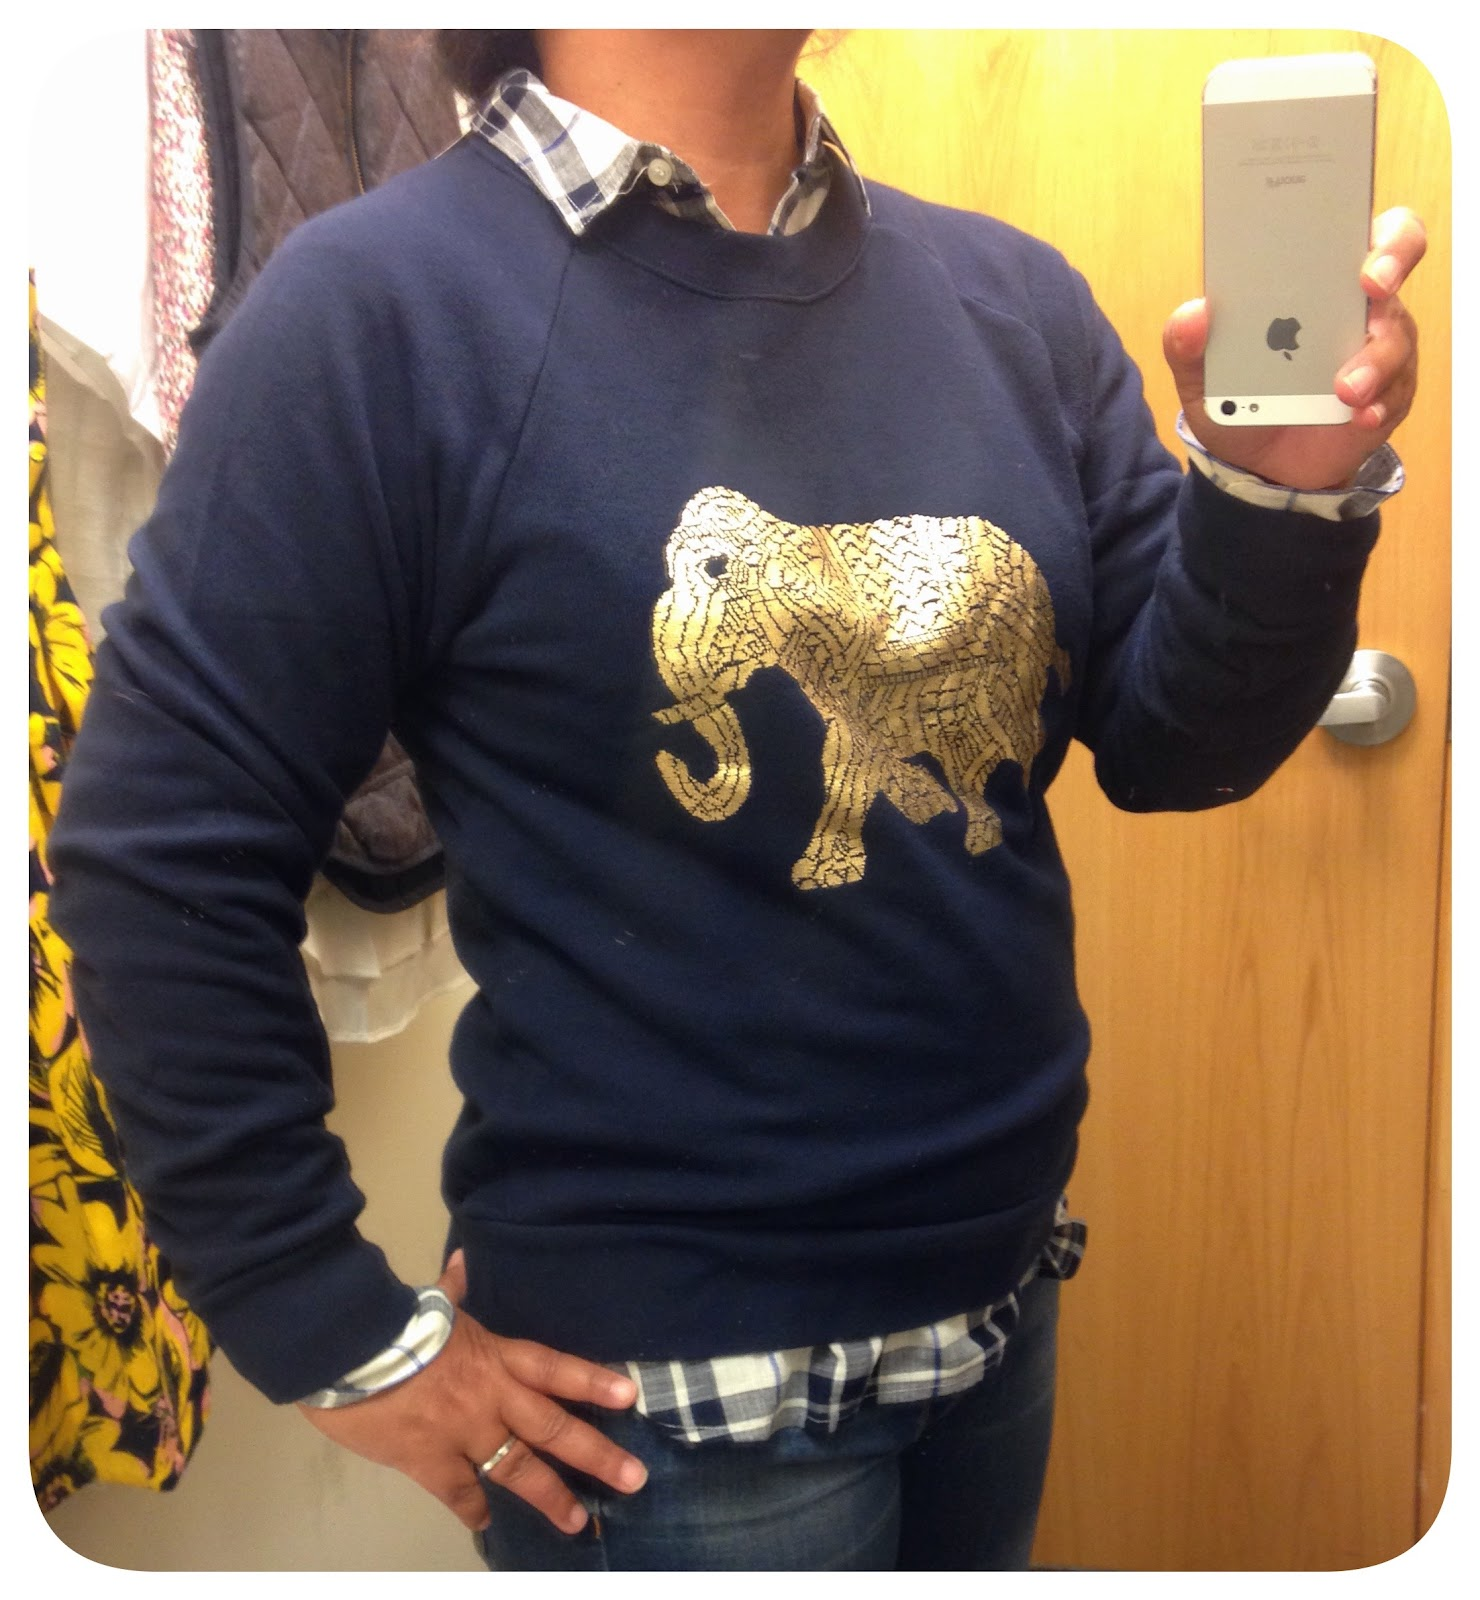 309cb08ded308c The metallic elephant seems about the same on both the tee and sweatshirt.  The fit is true-to-size